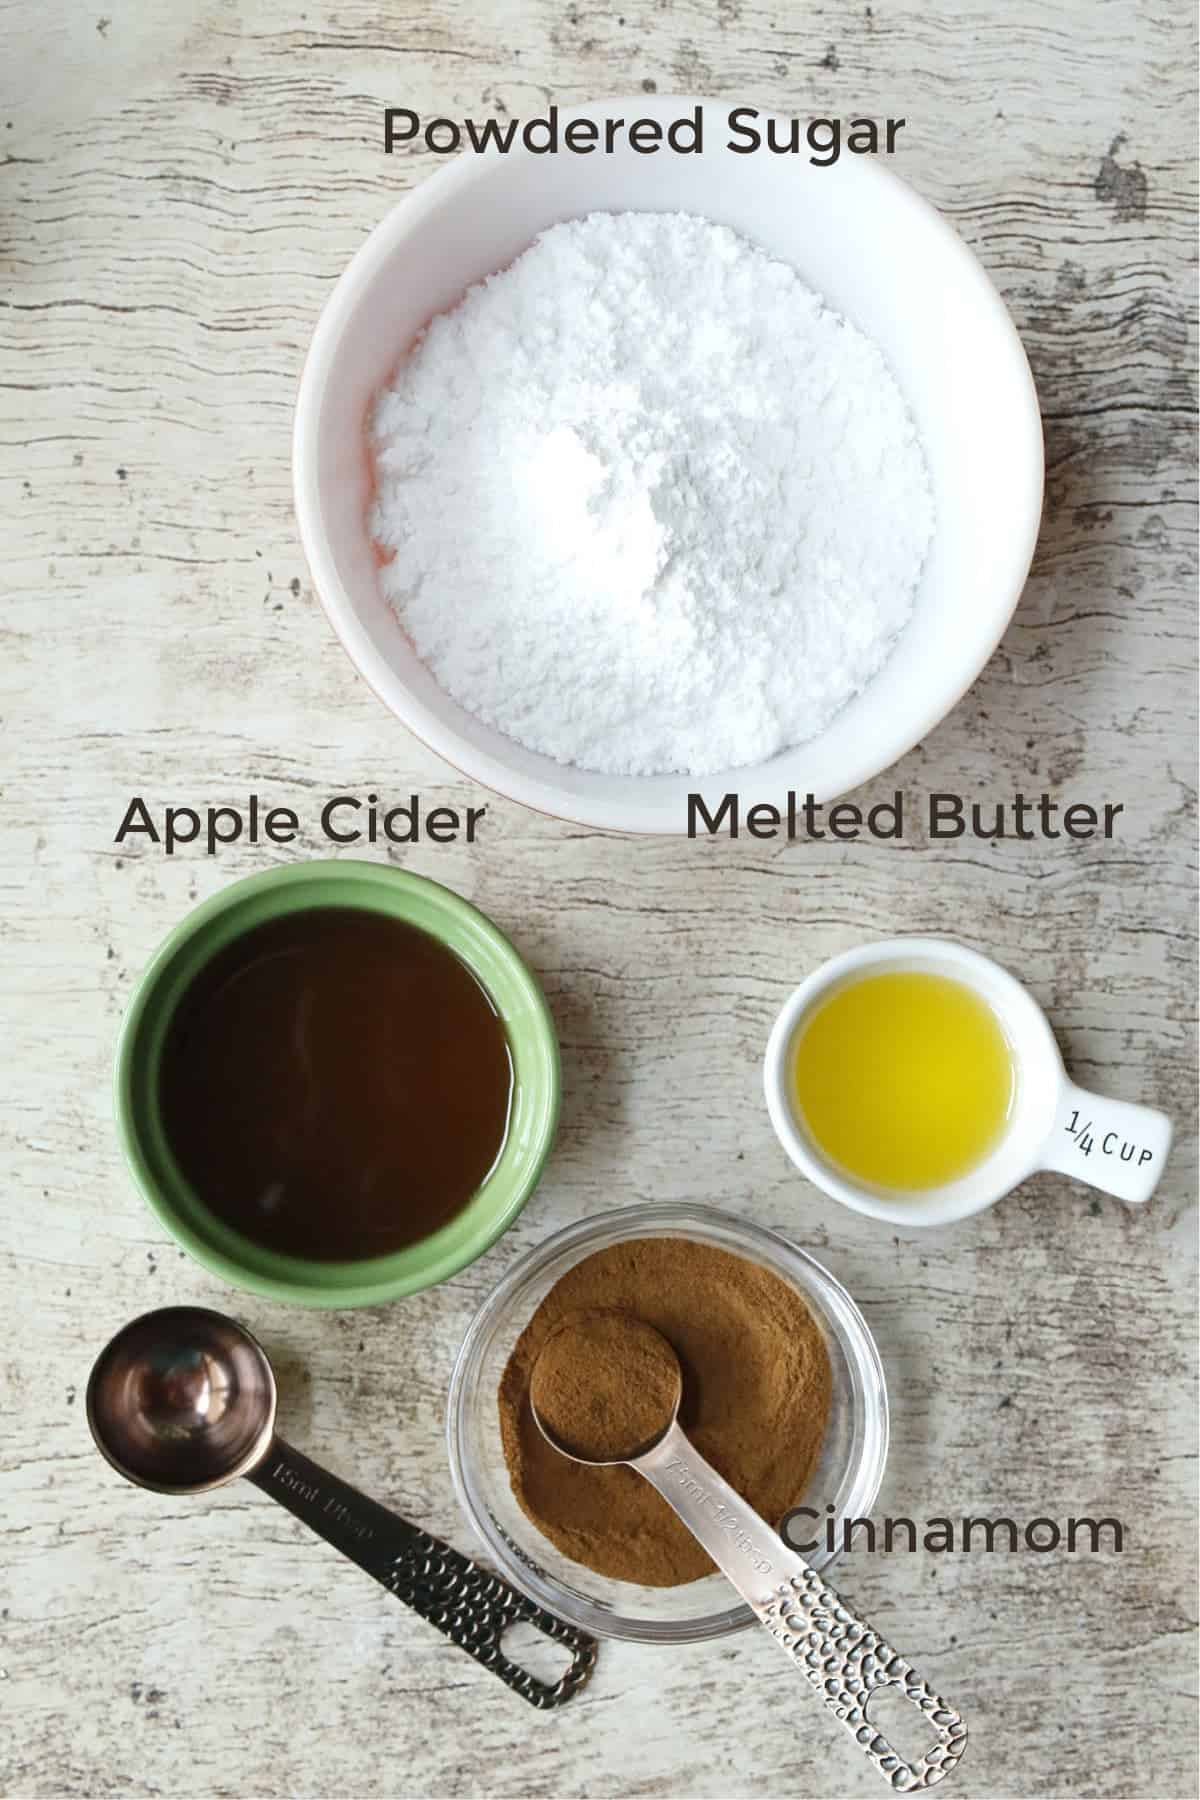 powdered sugar, butter, apples cider & cinnamon for icing